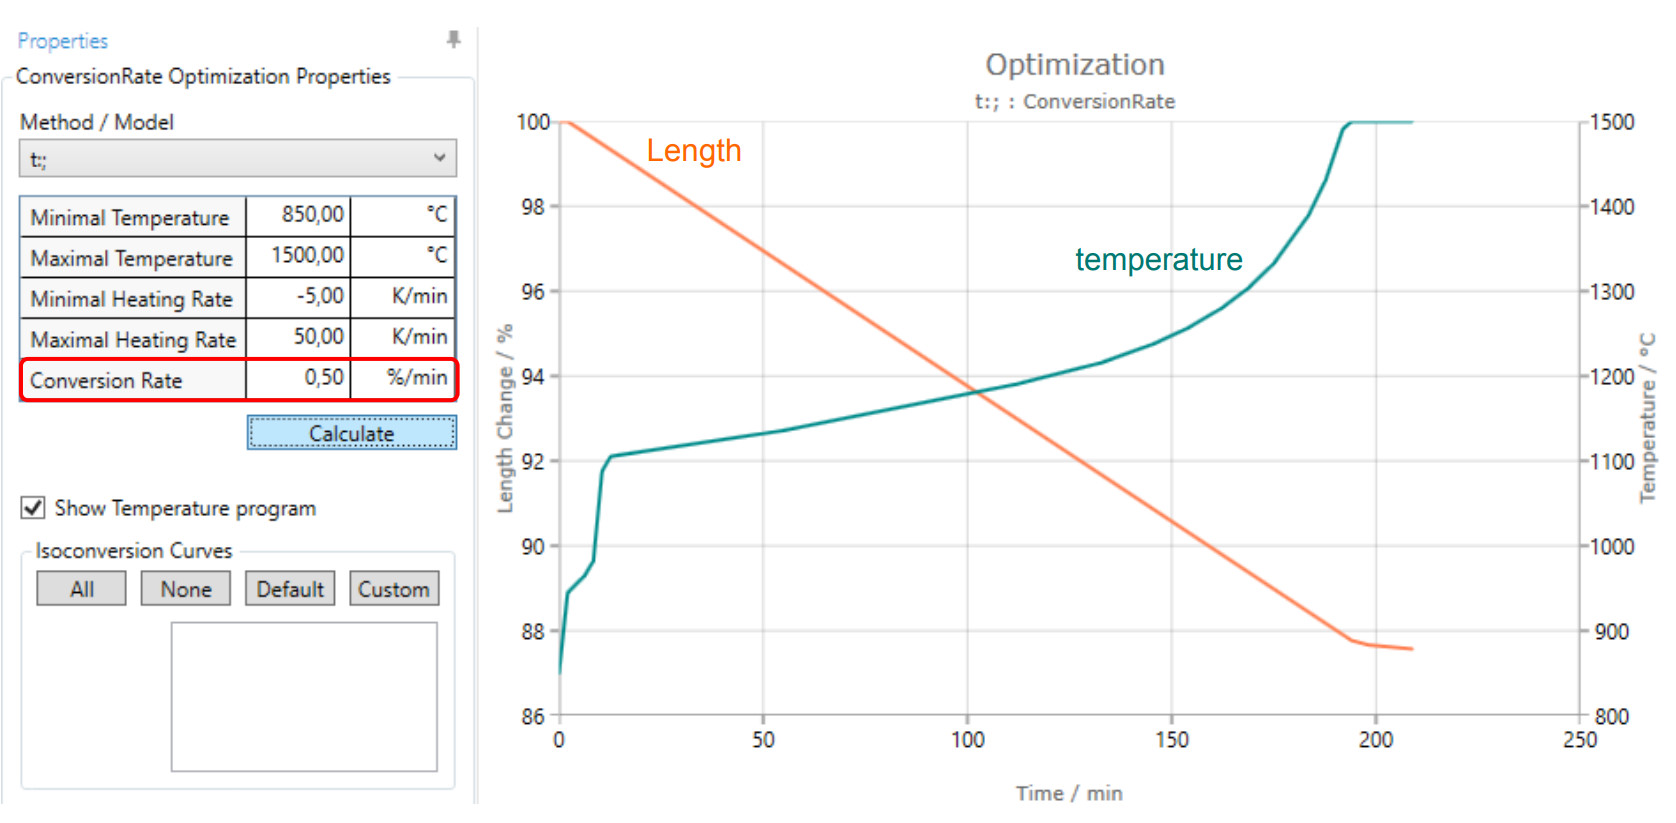 Modelled temperture curve based on a conversion rate of 0.5%/min